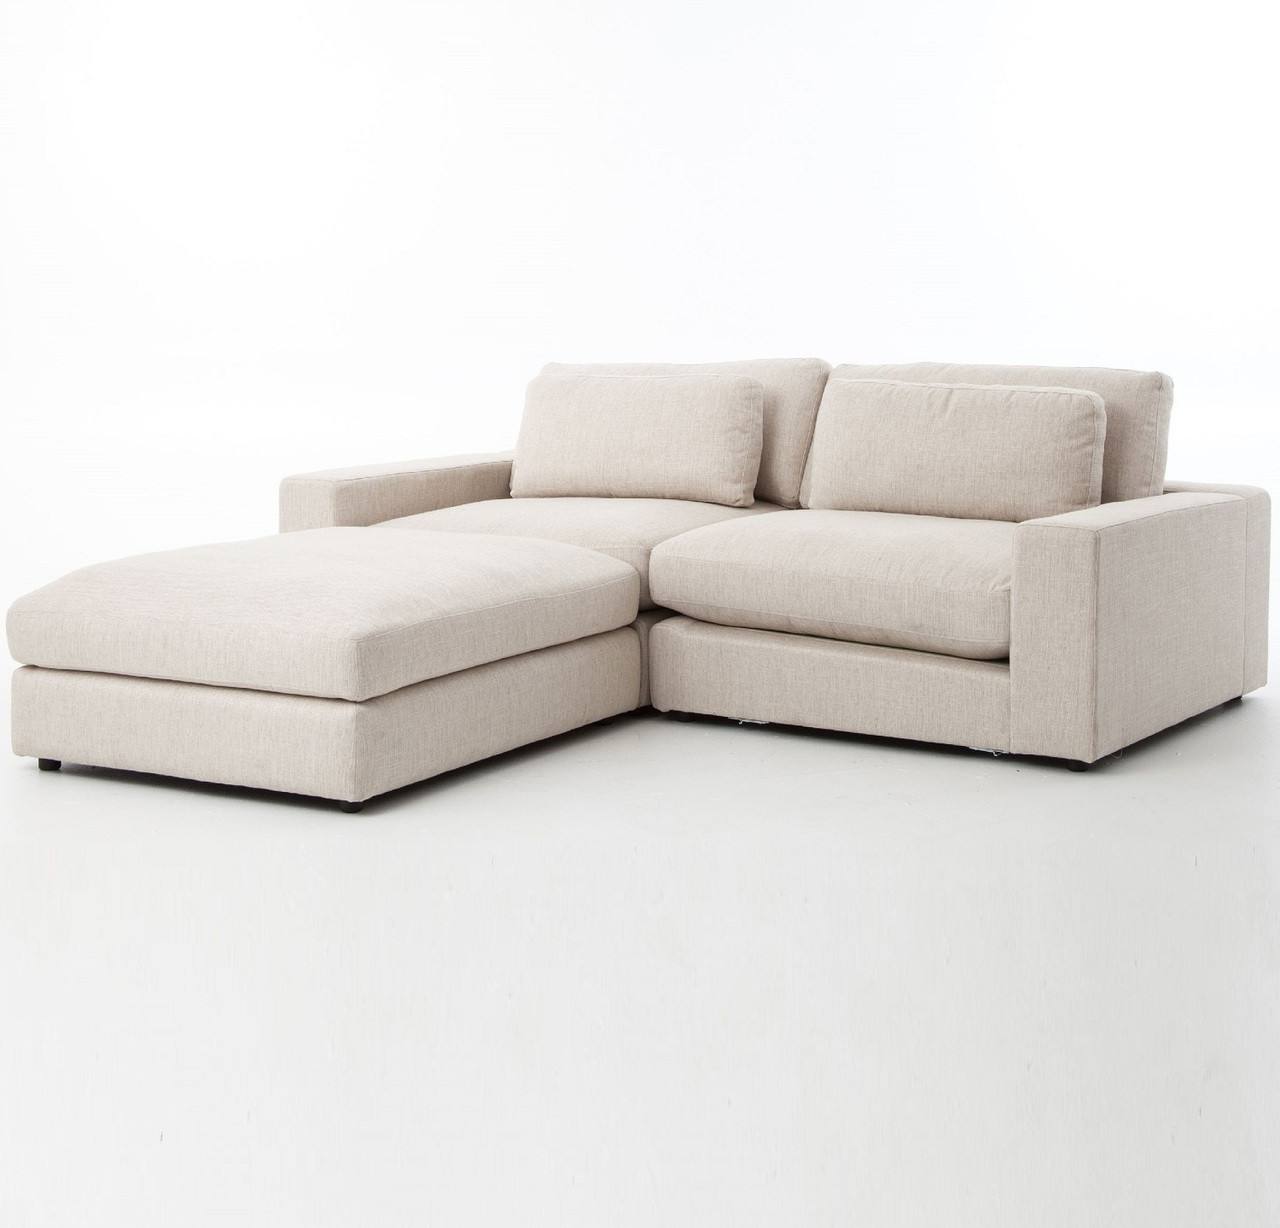 Contemporary Sectional: Bloor Beige Contemporary 3 Piece Small Sectional Sofa